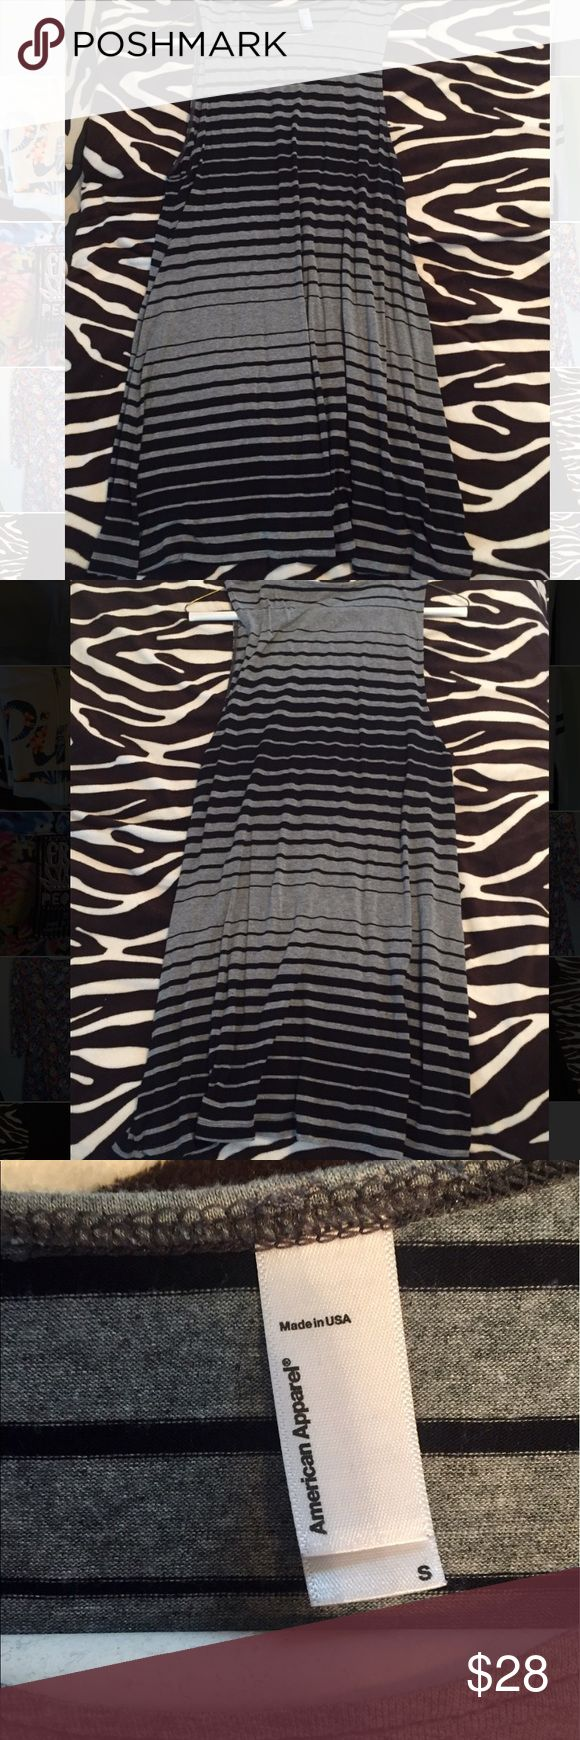 American Apparel Striped Tank Dress American Apparel grey and black stripe tank dress. Straight fit, pairs well with sneakers or sandals. Great basic piece to add to your wardrobe. Lightly used American Apparel Dresses